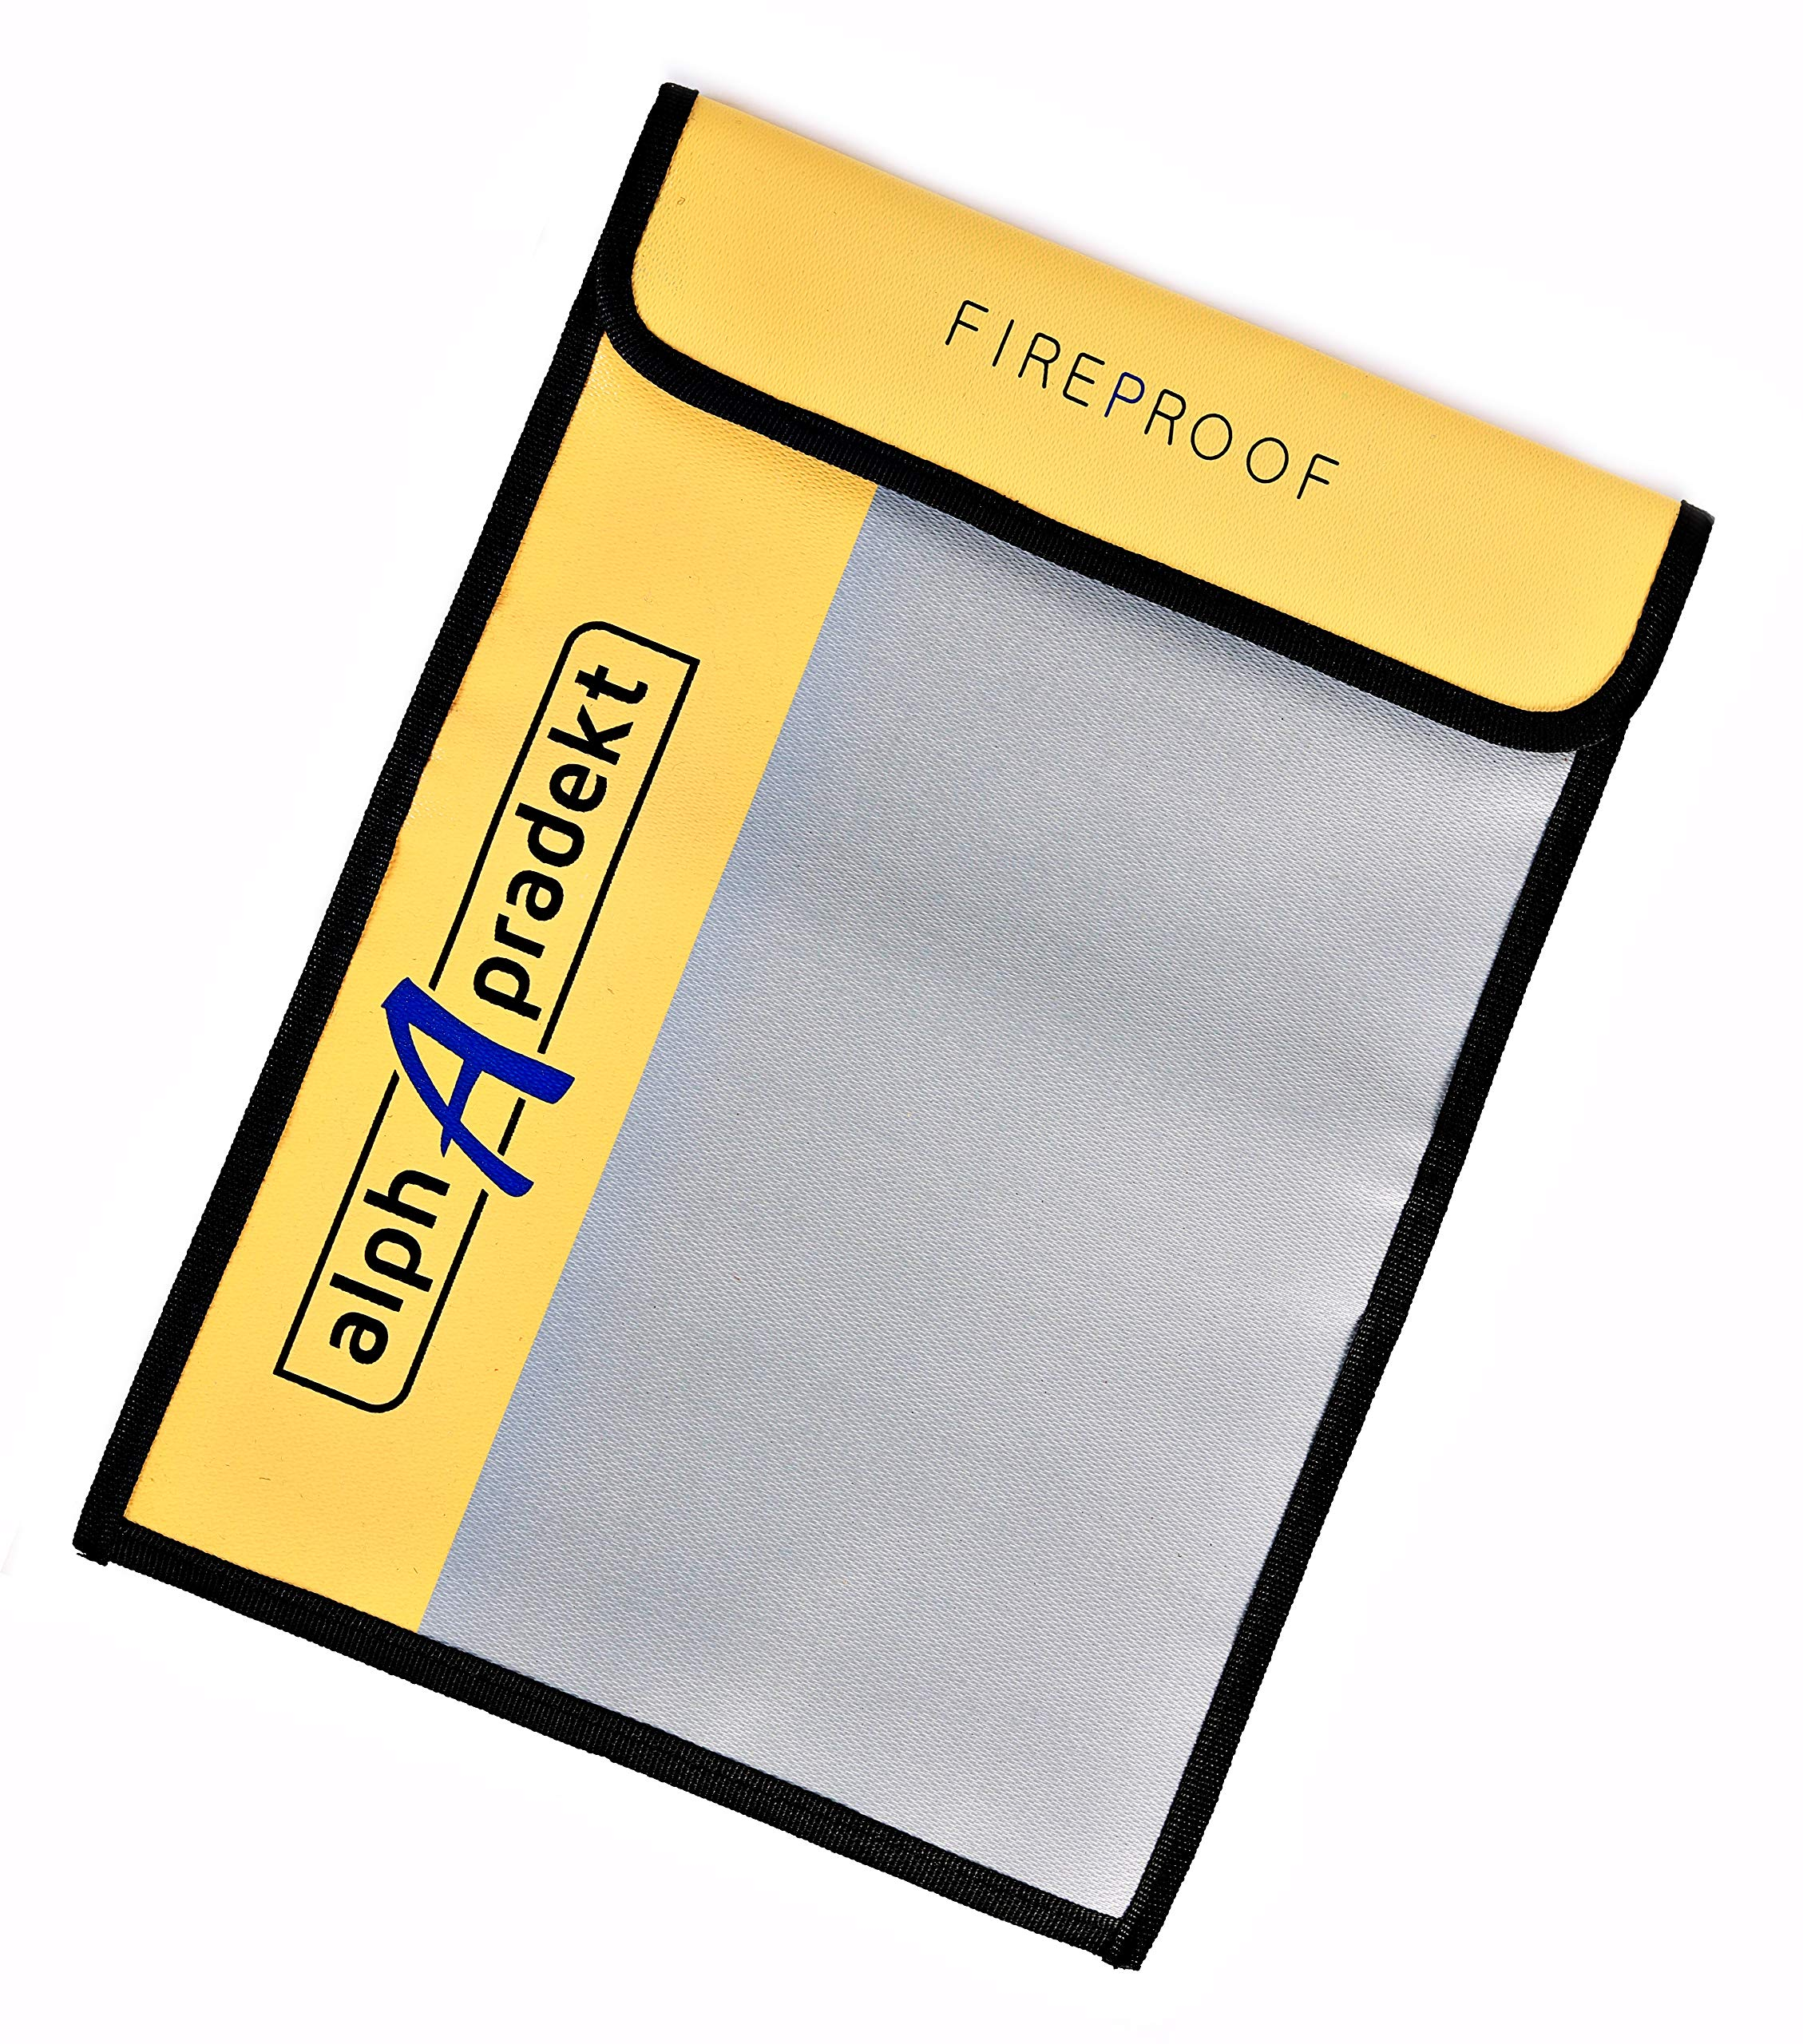 """Fireproof Document Bag 15"""" x 11"""" with Divider : Safe Fire Proof and Waterproof Silicone Coated Non Itchy Safe Accessory Pouch for Documents. Water Resistant Money Lock Bags as Home Safety Cash Storage"""